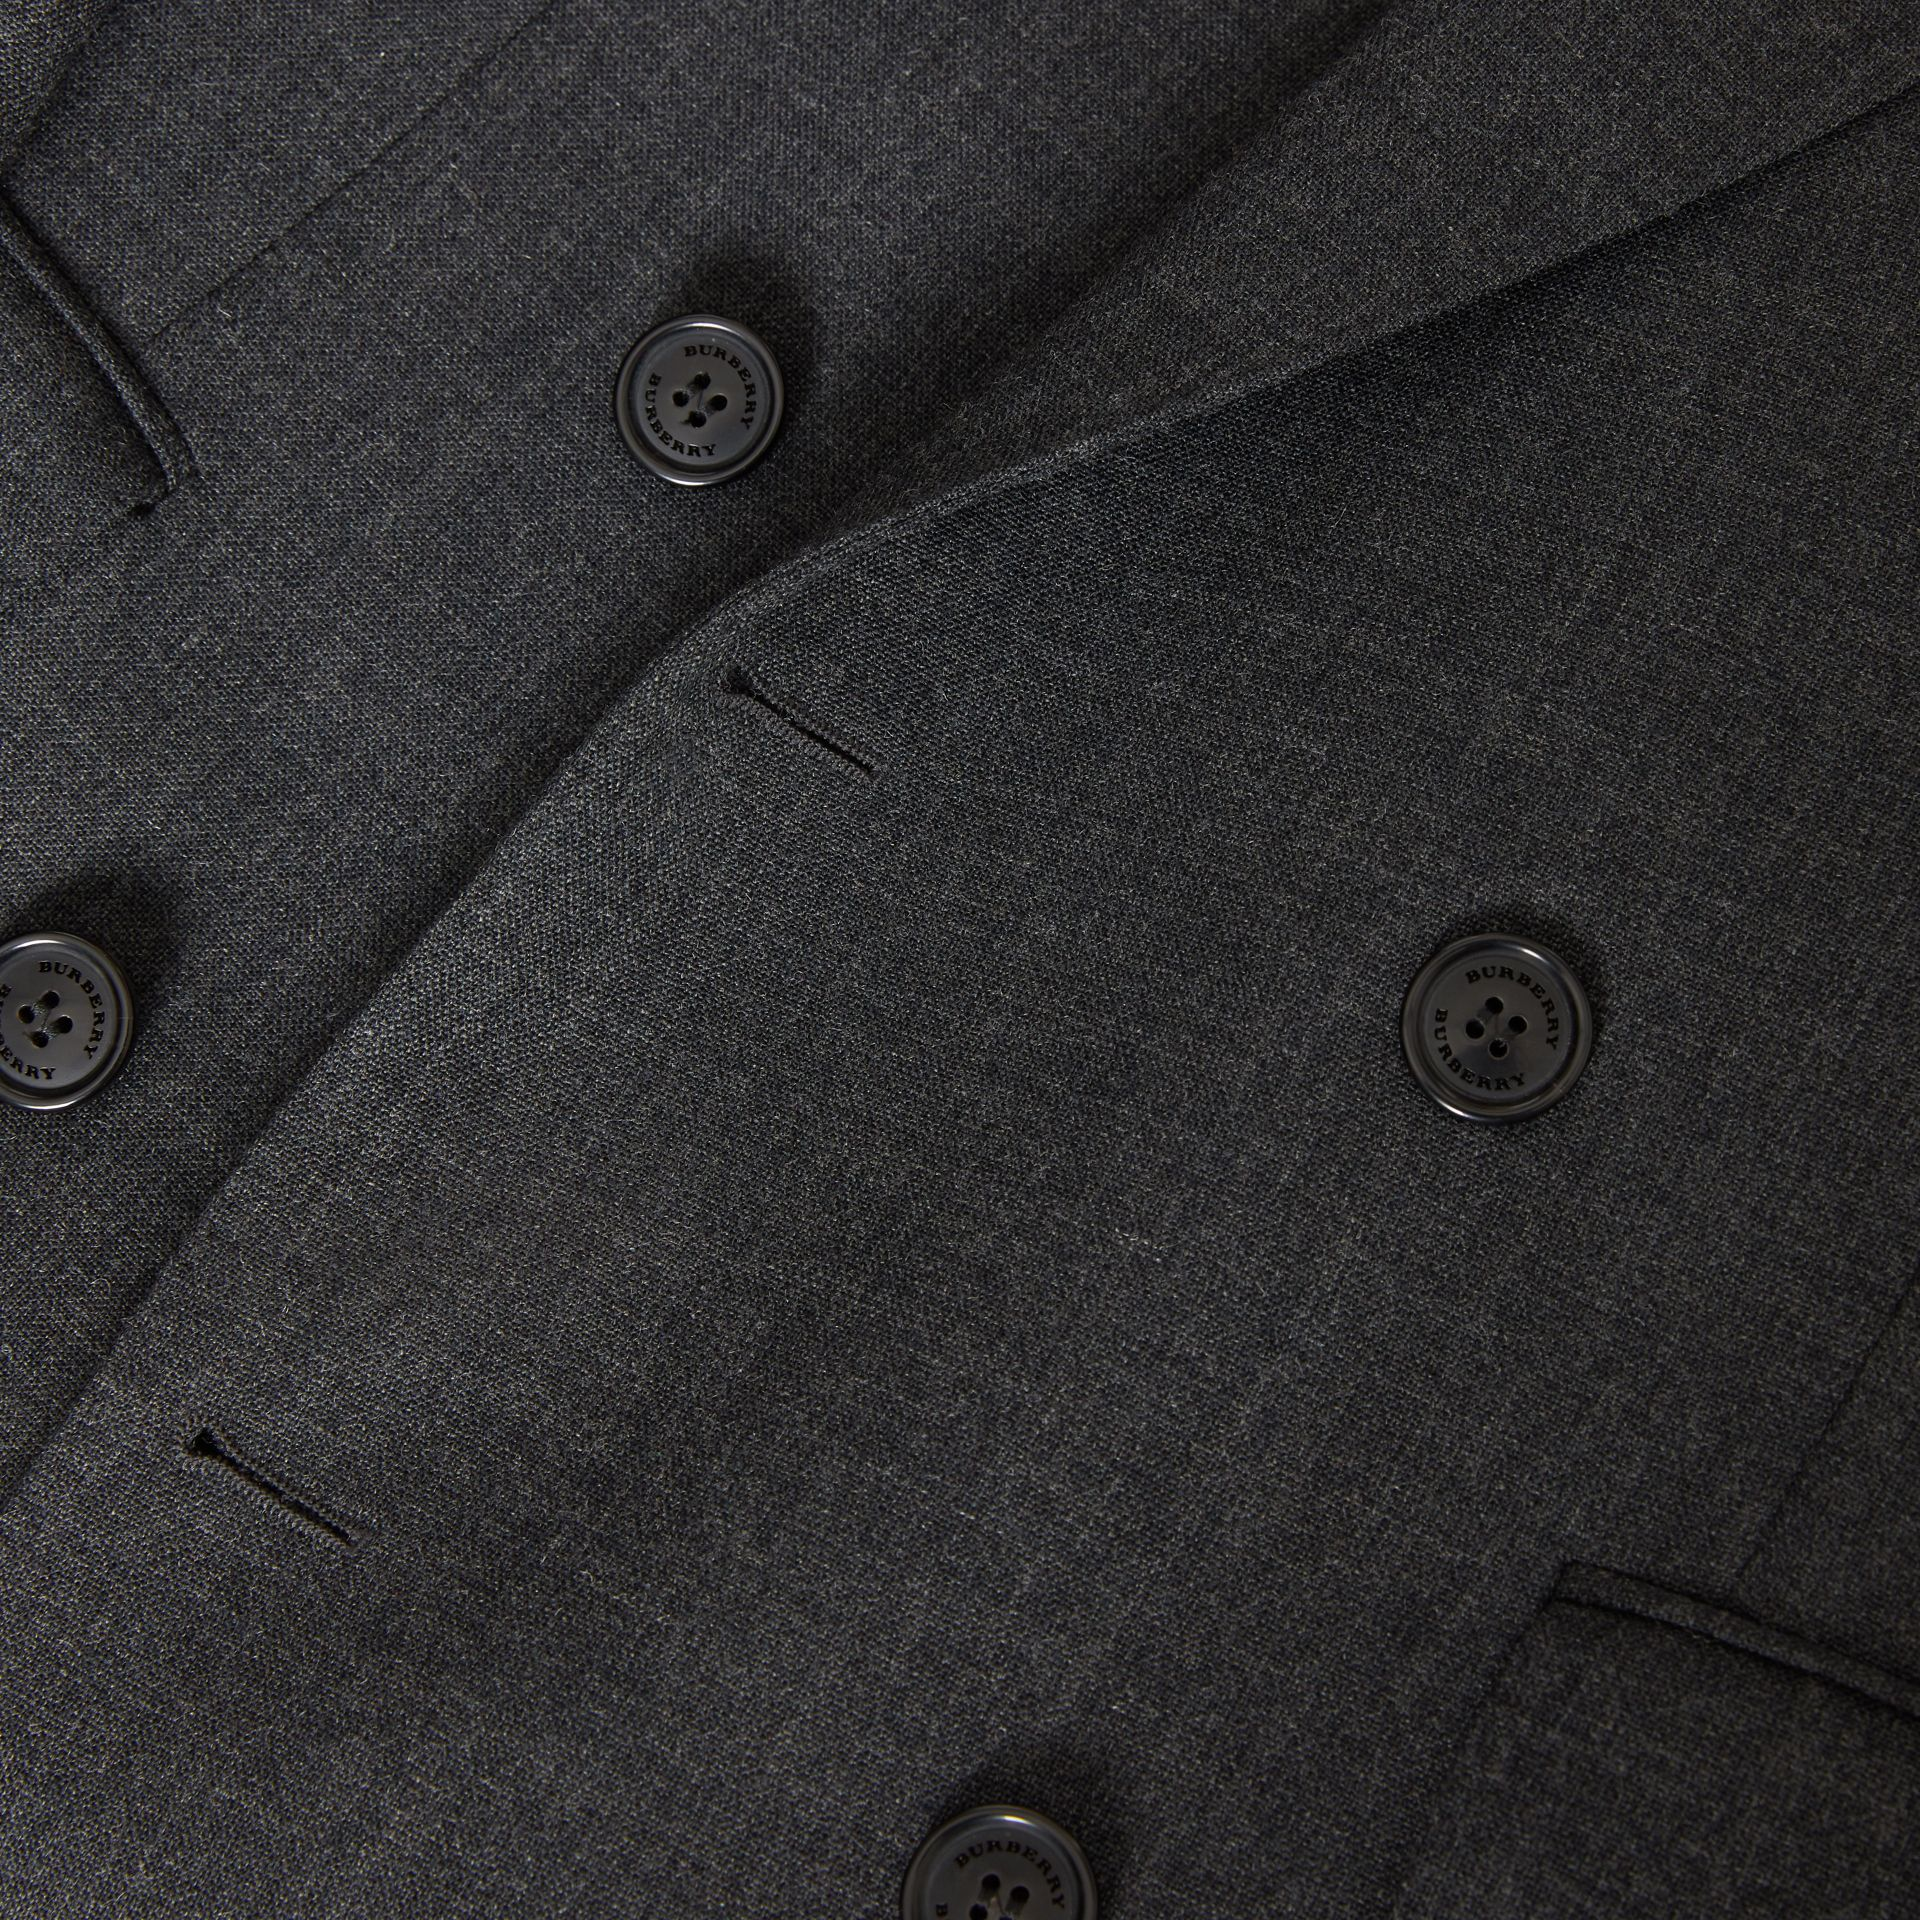 English Fit Wool Double-breasted Jacket in Dark Grey - Men | Burberry - gallery image 1